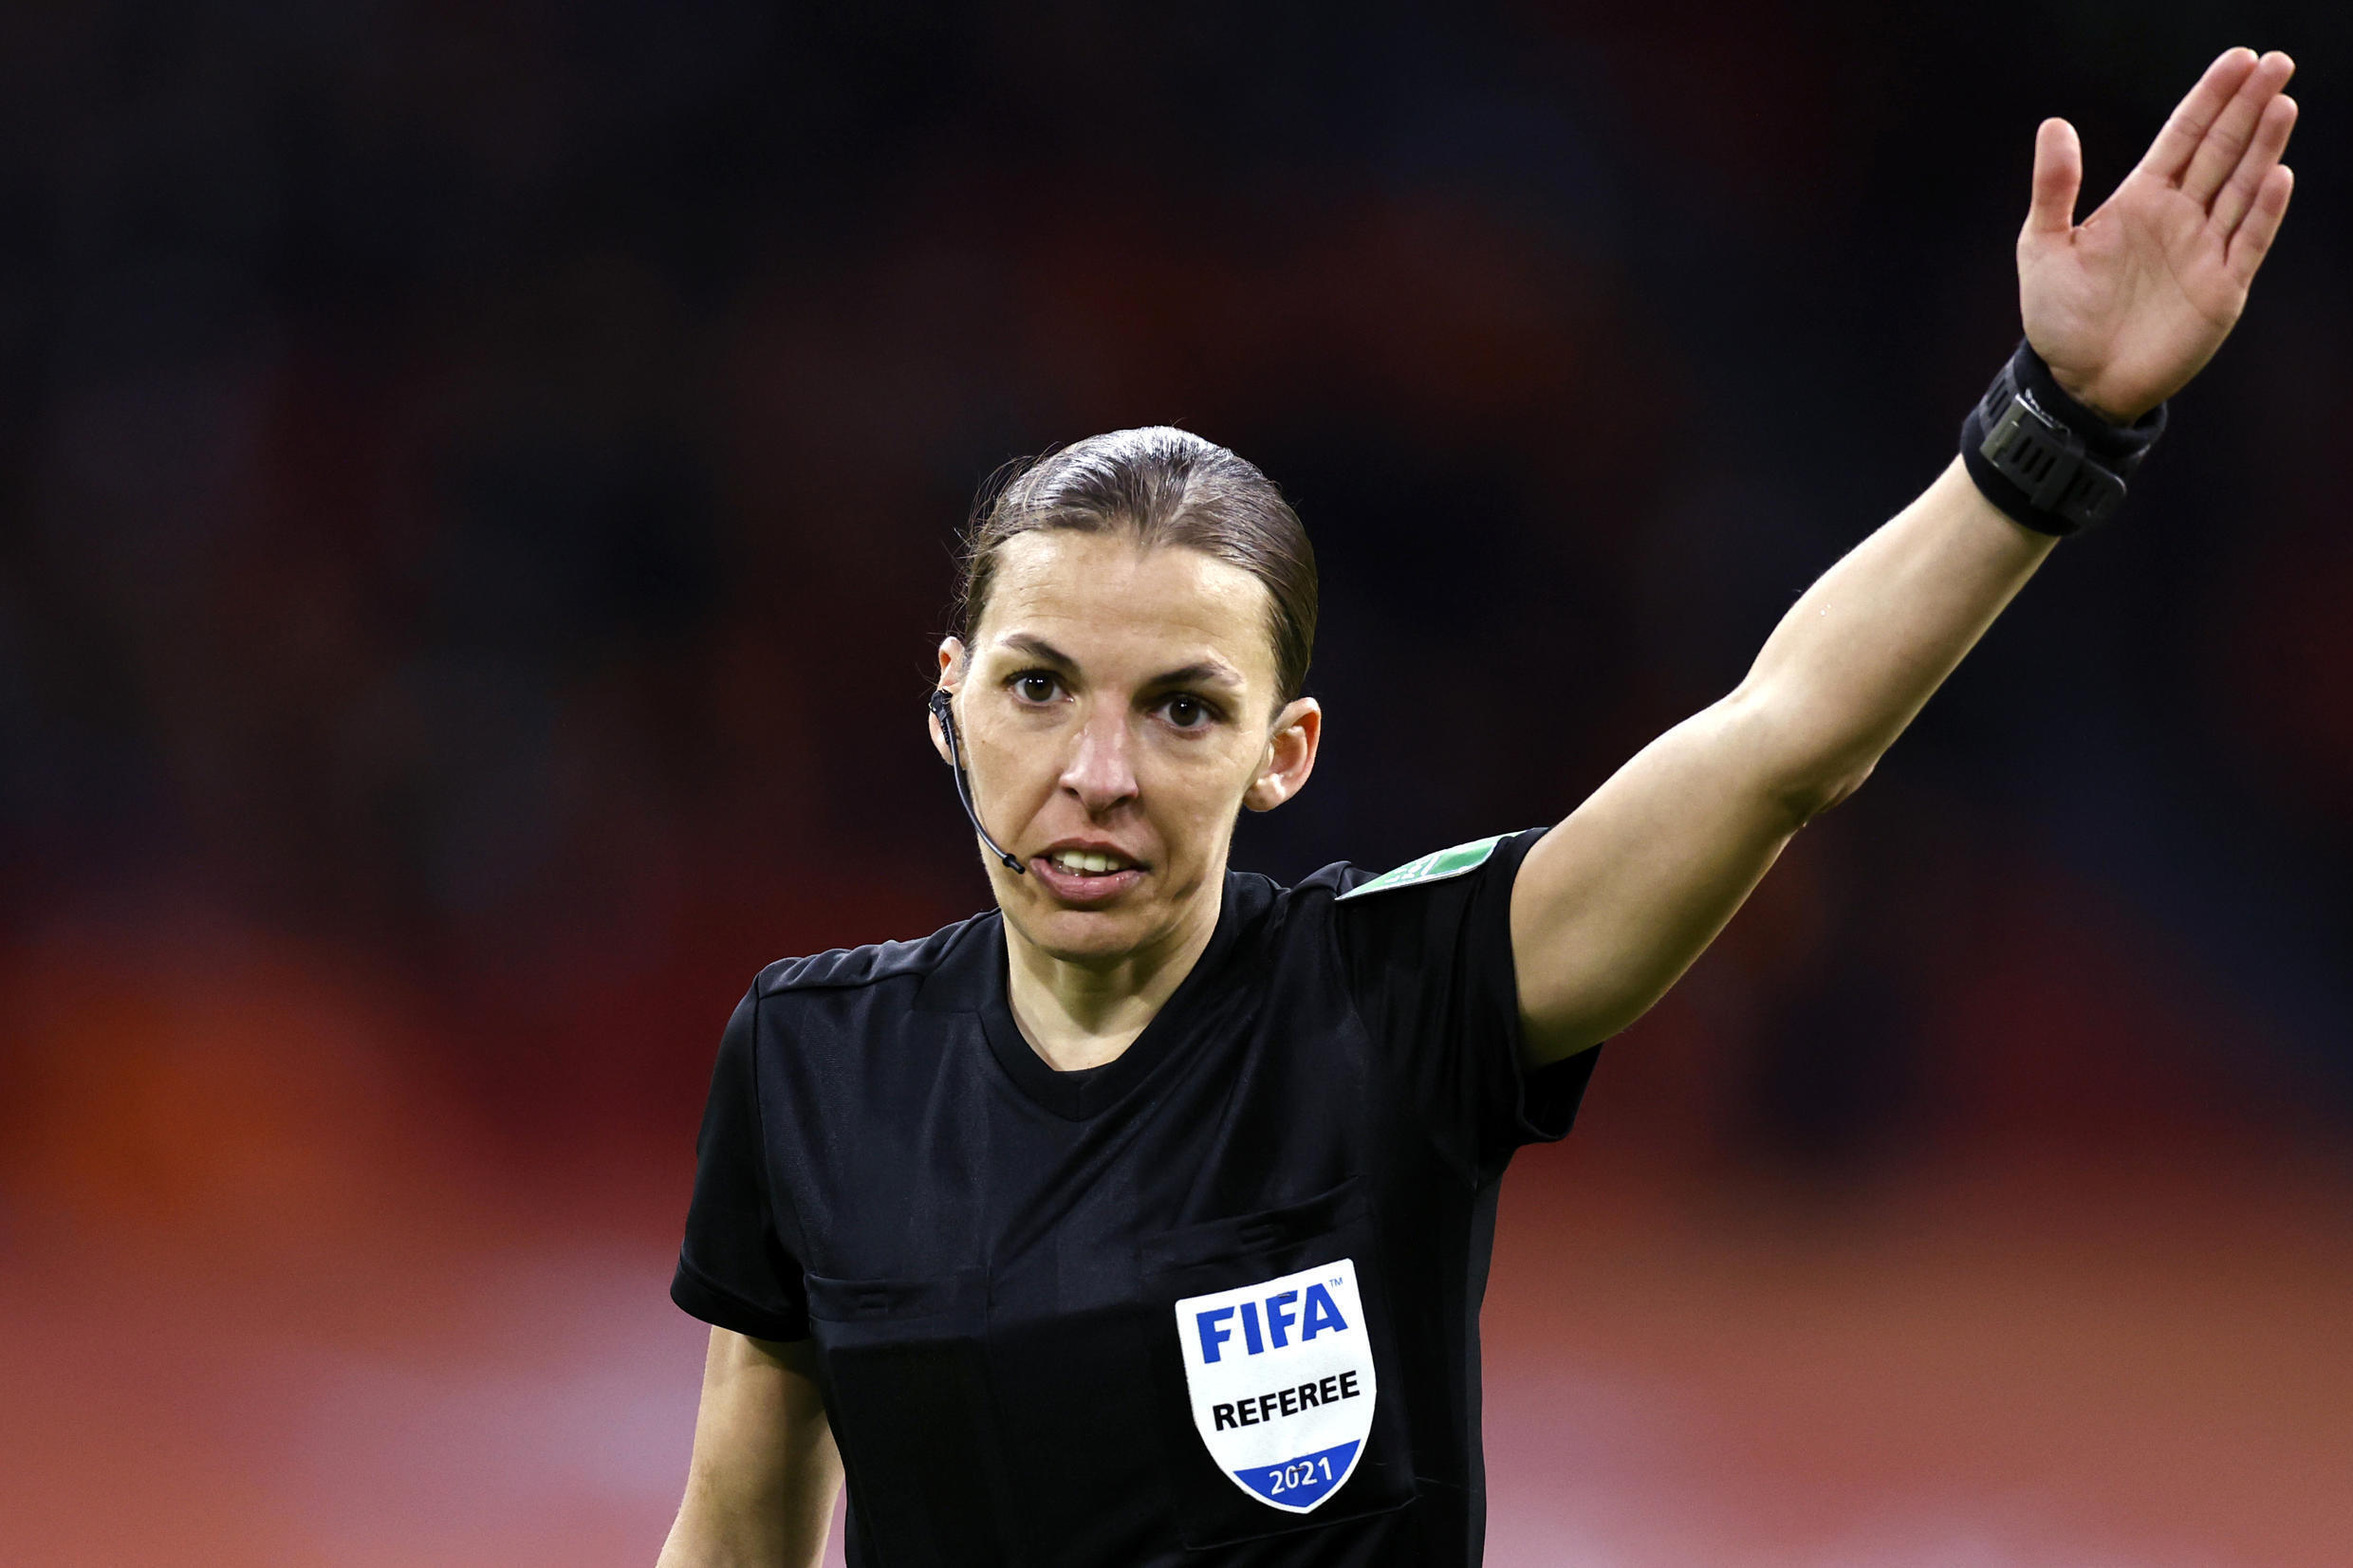 2021-03-27 sport football soccer france woman referee Stéphanie Frappart netherlands latvia amsterdam world cup qualifier